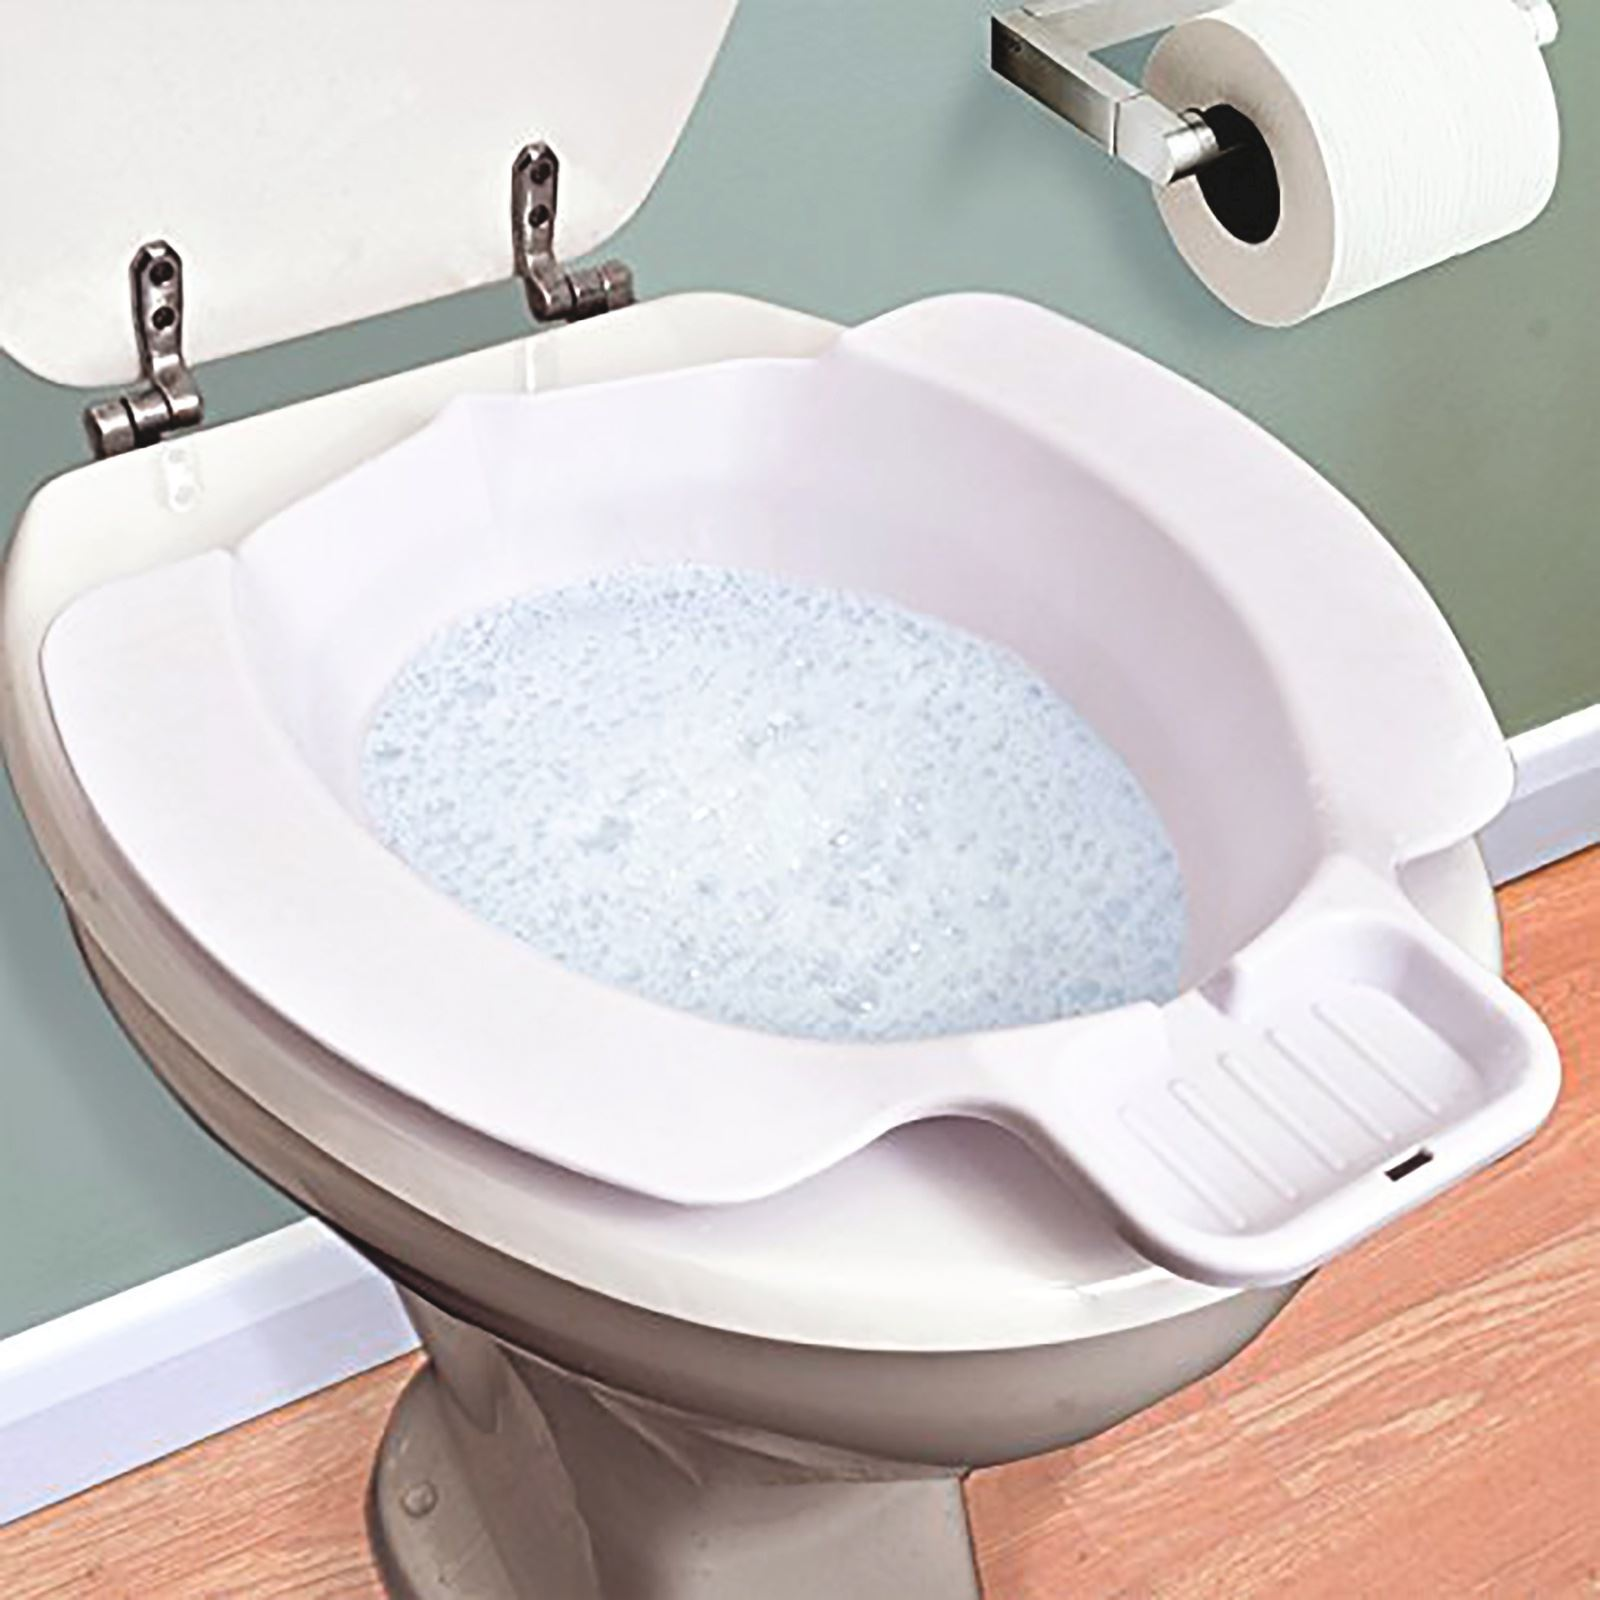 Strange Details About Portable Bidet Personal Hygiene Toilet Loo Cleaning Aid Camping Travel Discreet Gmtry Best Dining Table And Chair Ideas Images Gmtryco